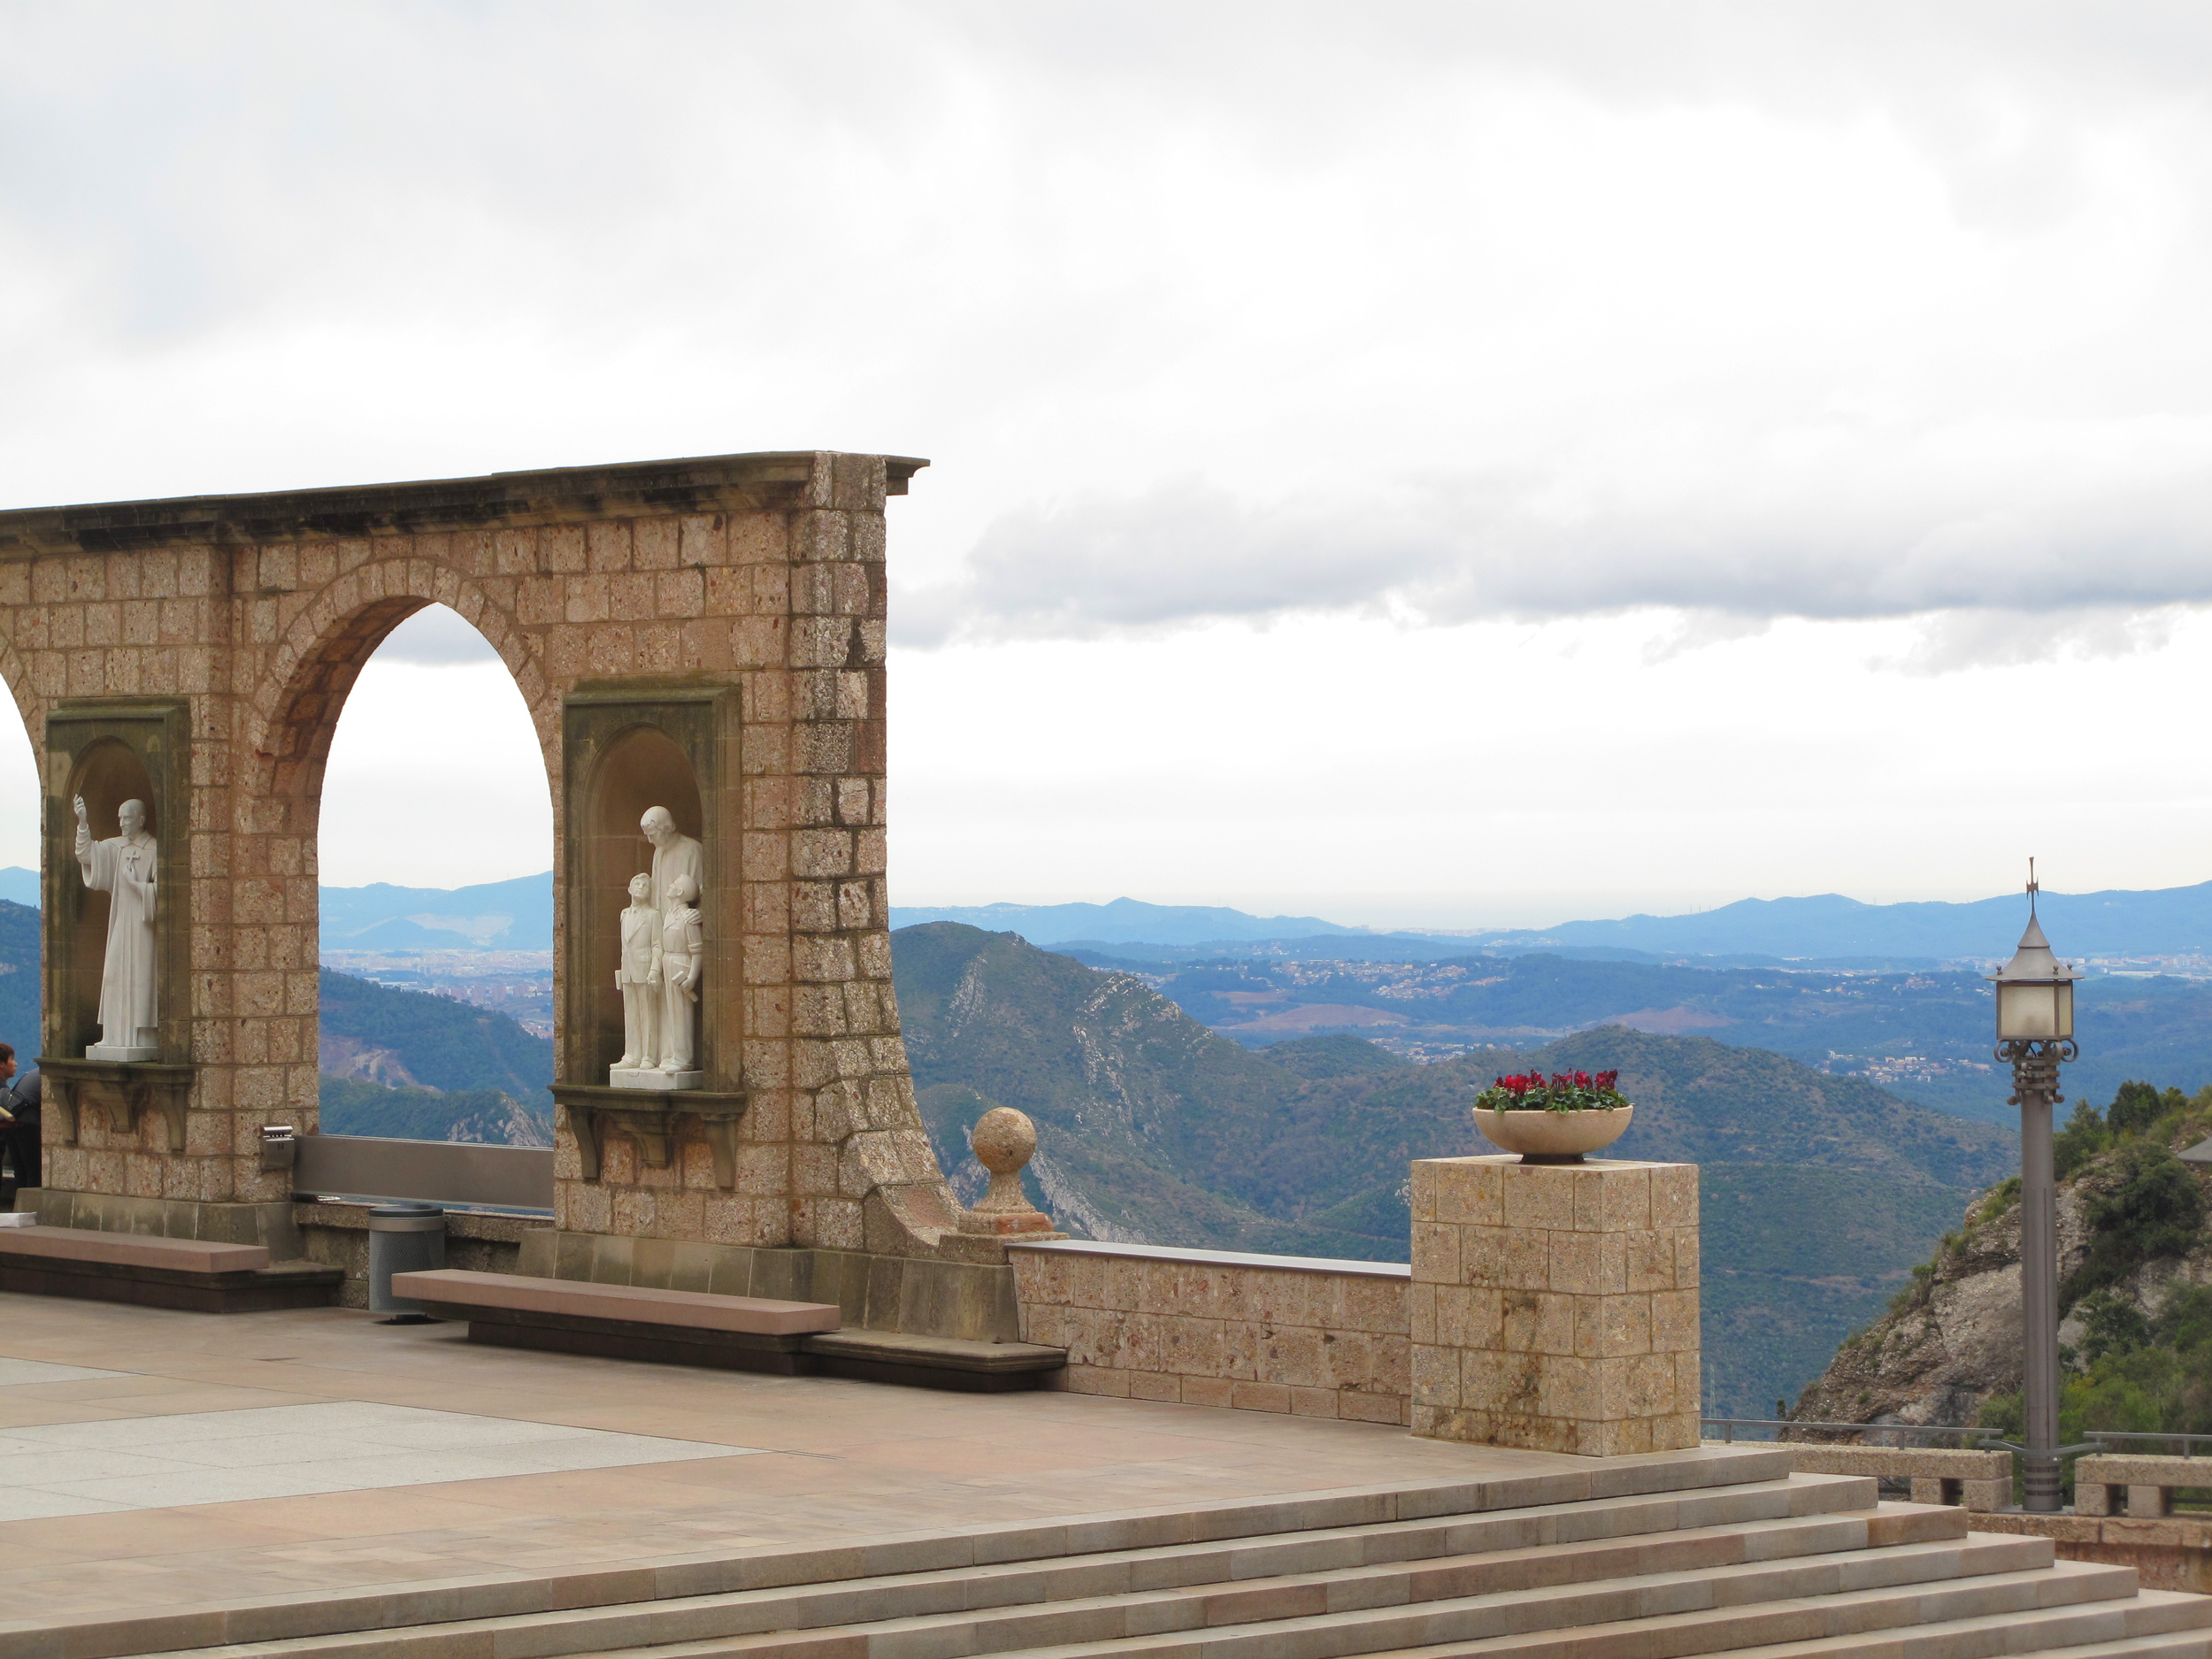 Walls and stone figures in the courtyards of Montserrat monastery